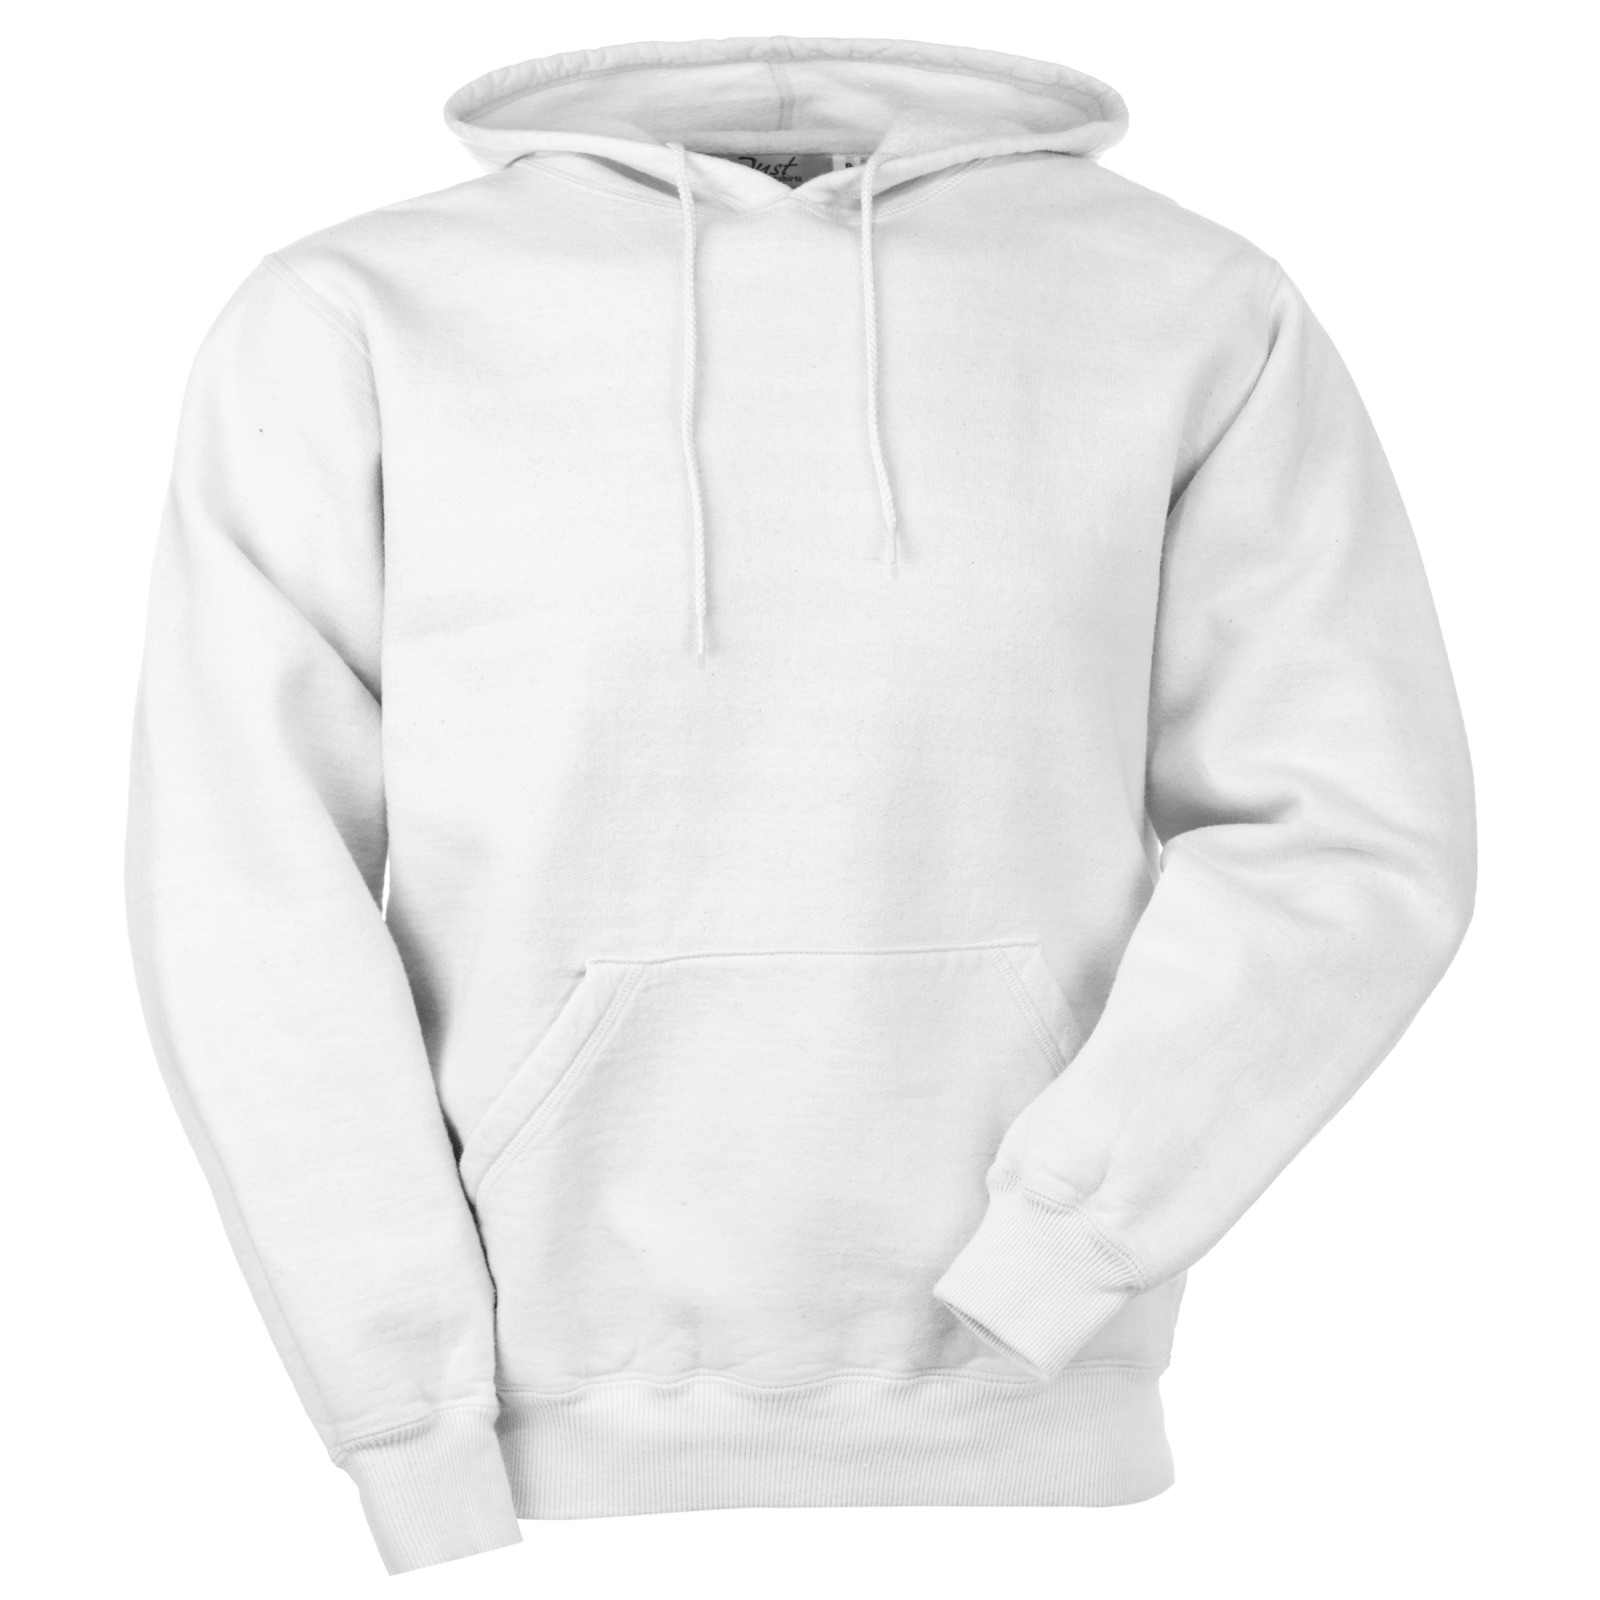 Hooded Pullover White 100% Cotton